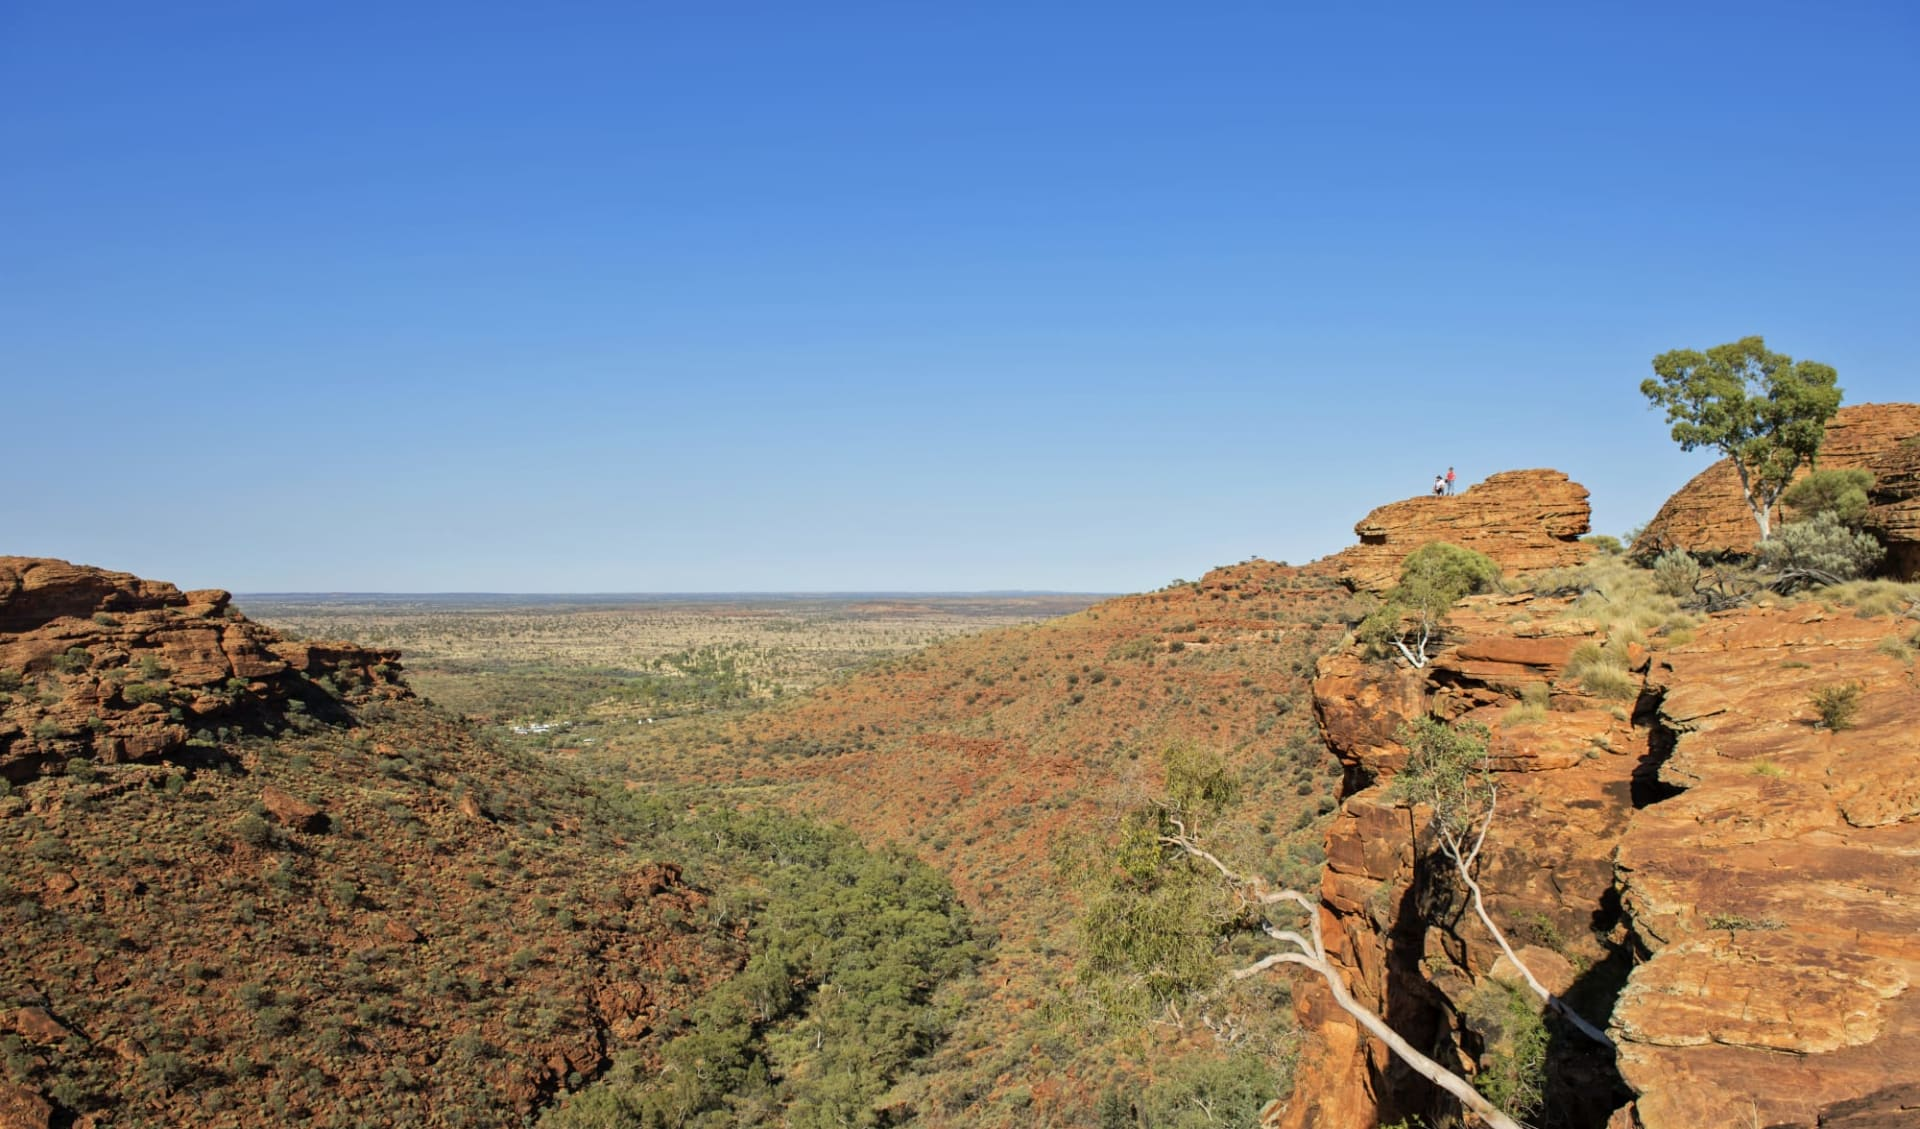 4x4 Red Centre Wallaby Dreaming Safari ab Alice Springs: Kings Canyon - Blick auf Ebene